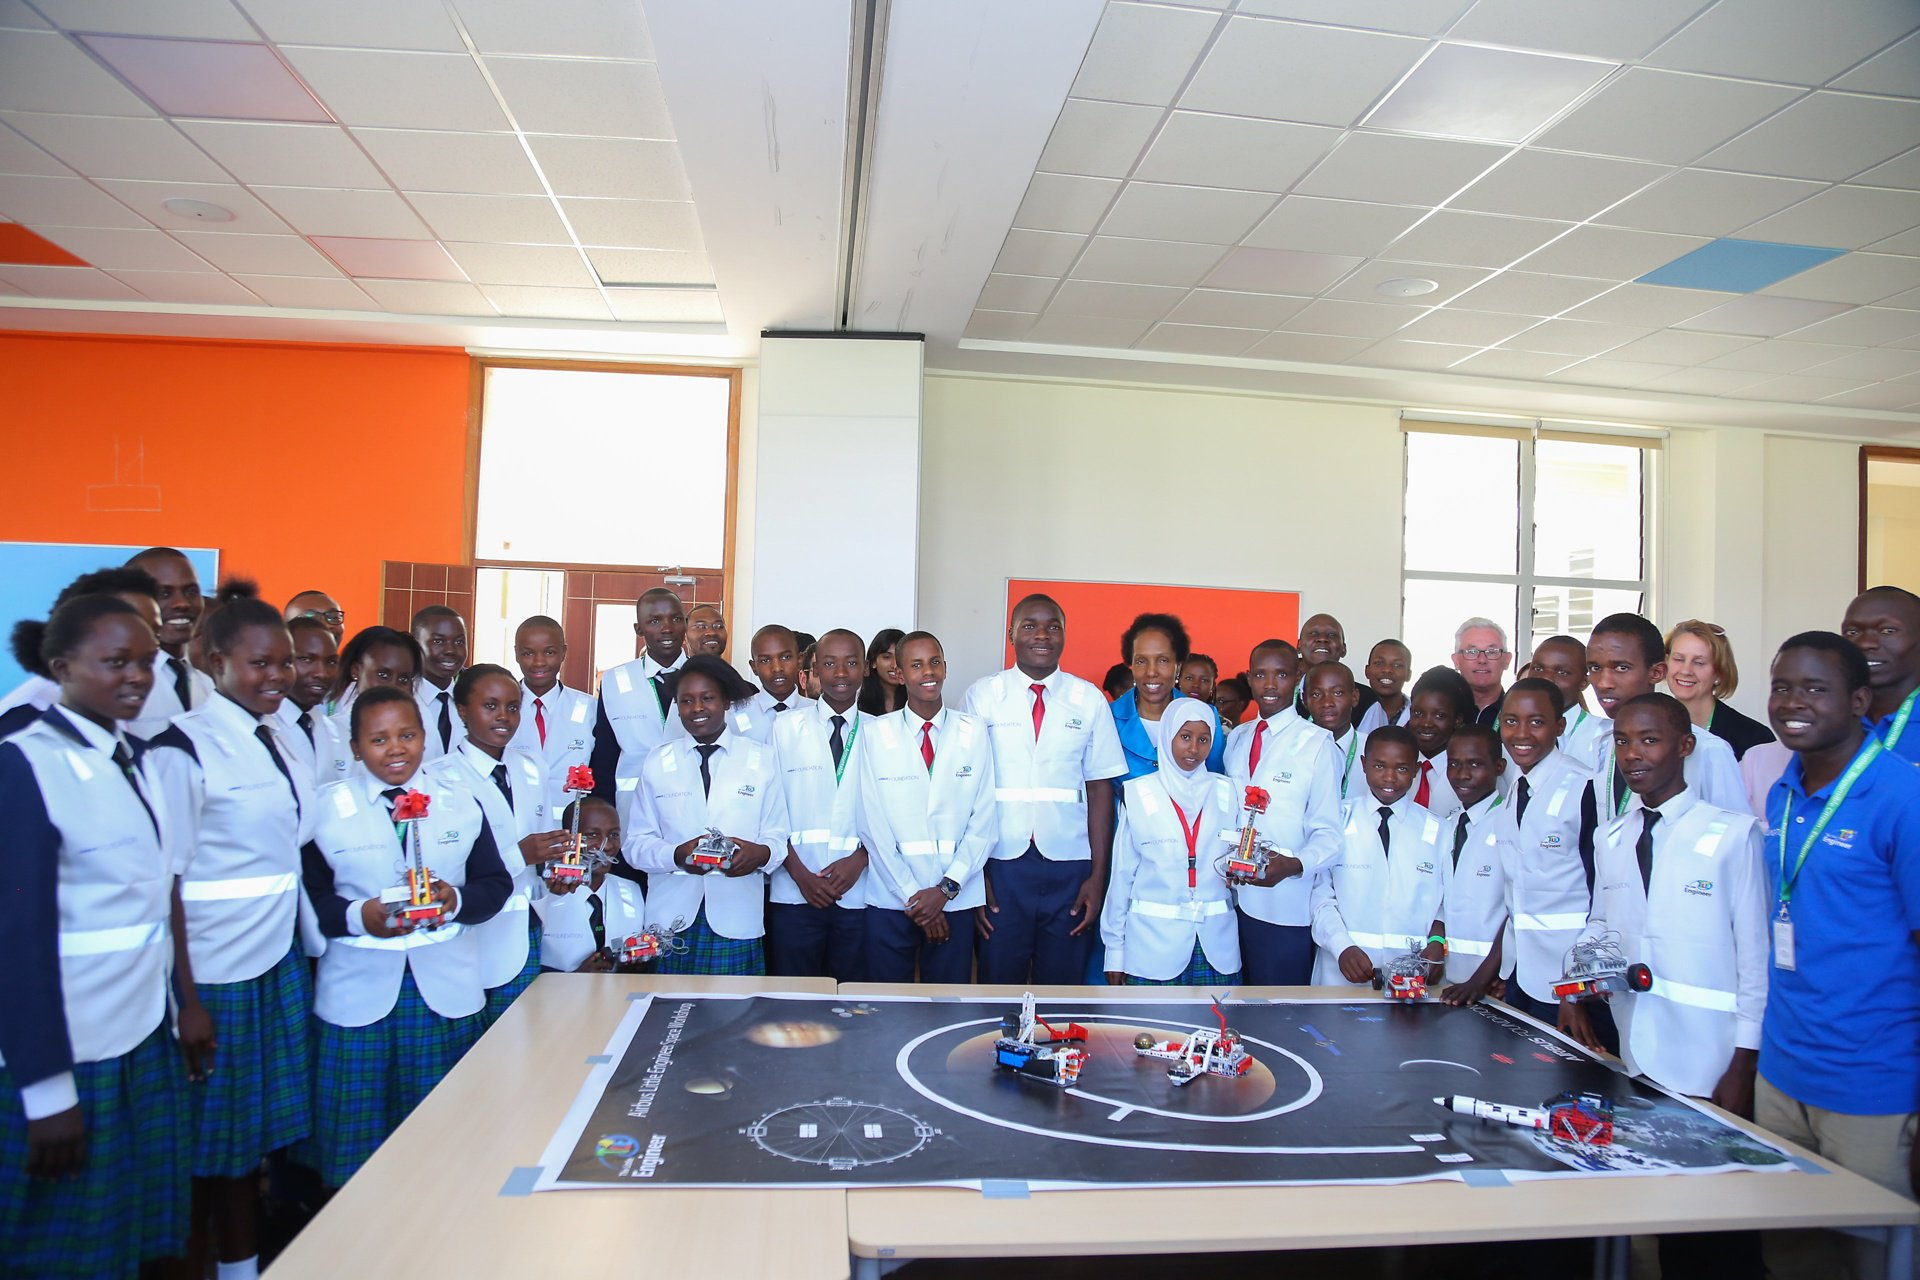 30 Kenyan students joined the Airbus Little Engineer programme